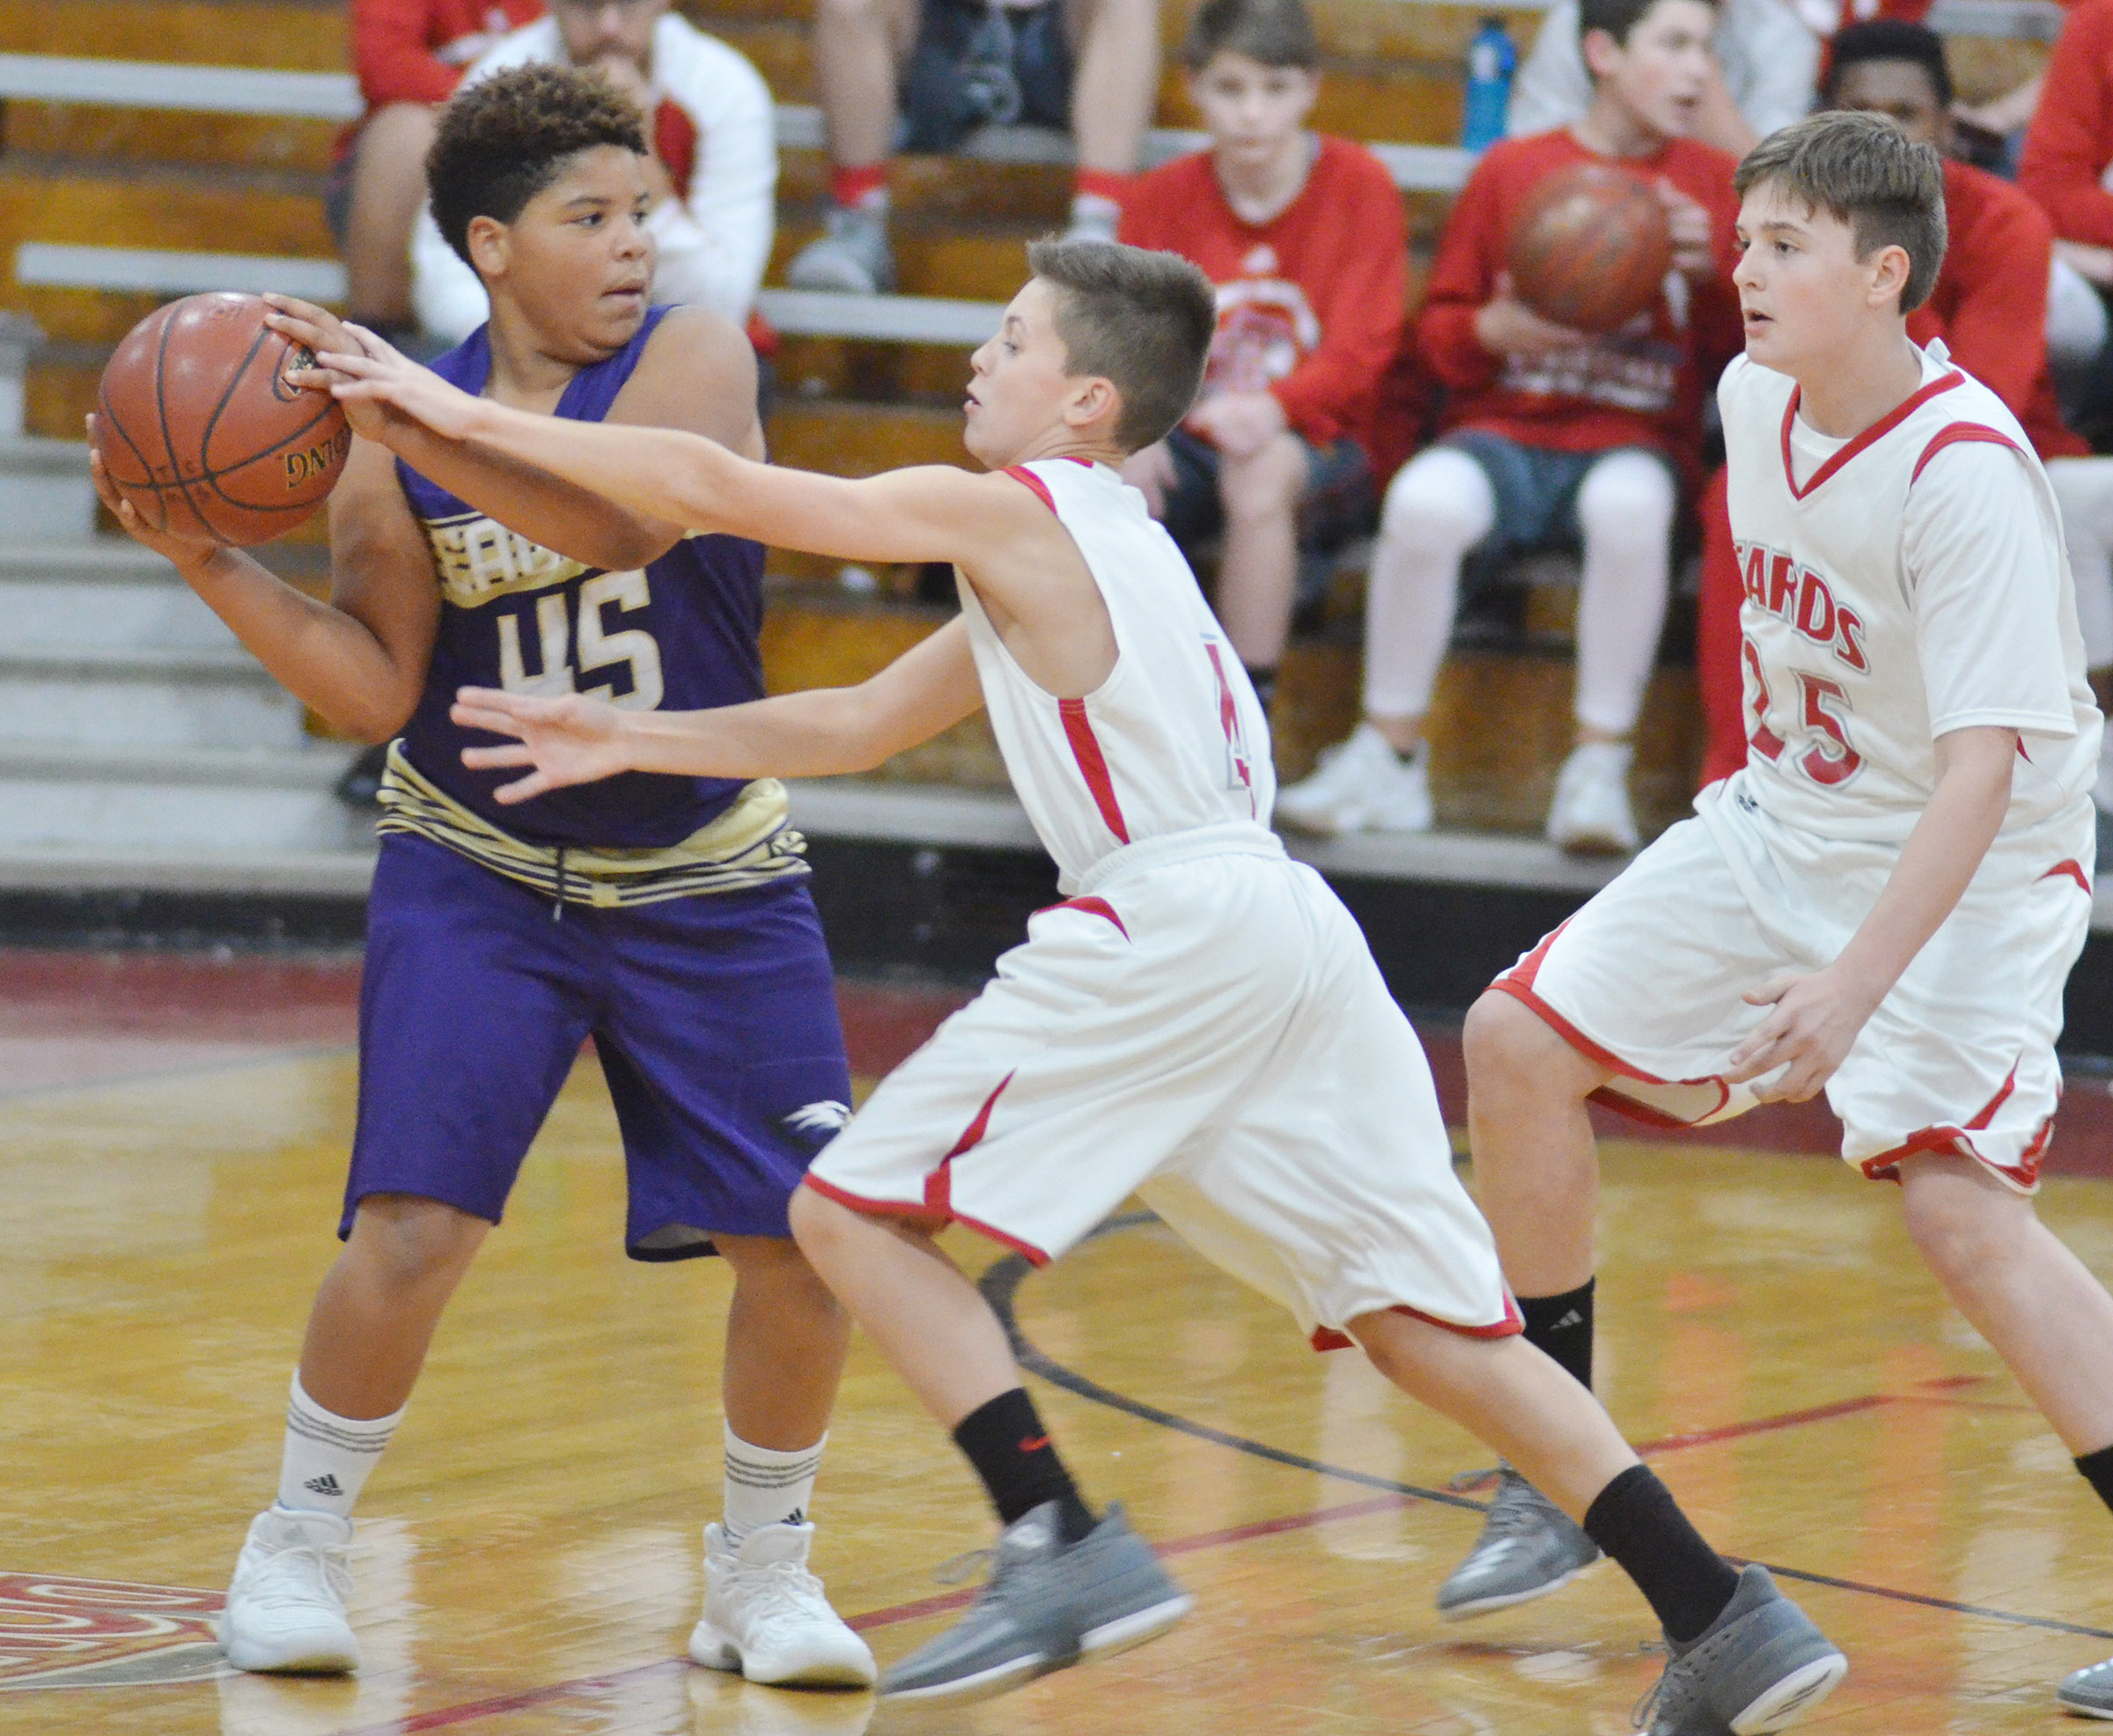 CMS sixth-grader Devin Kinser protects the ball.